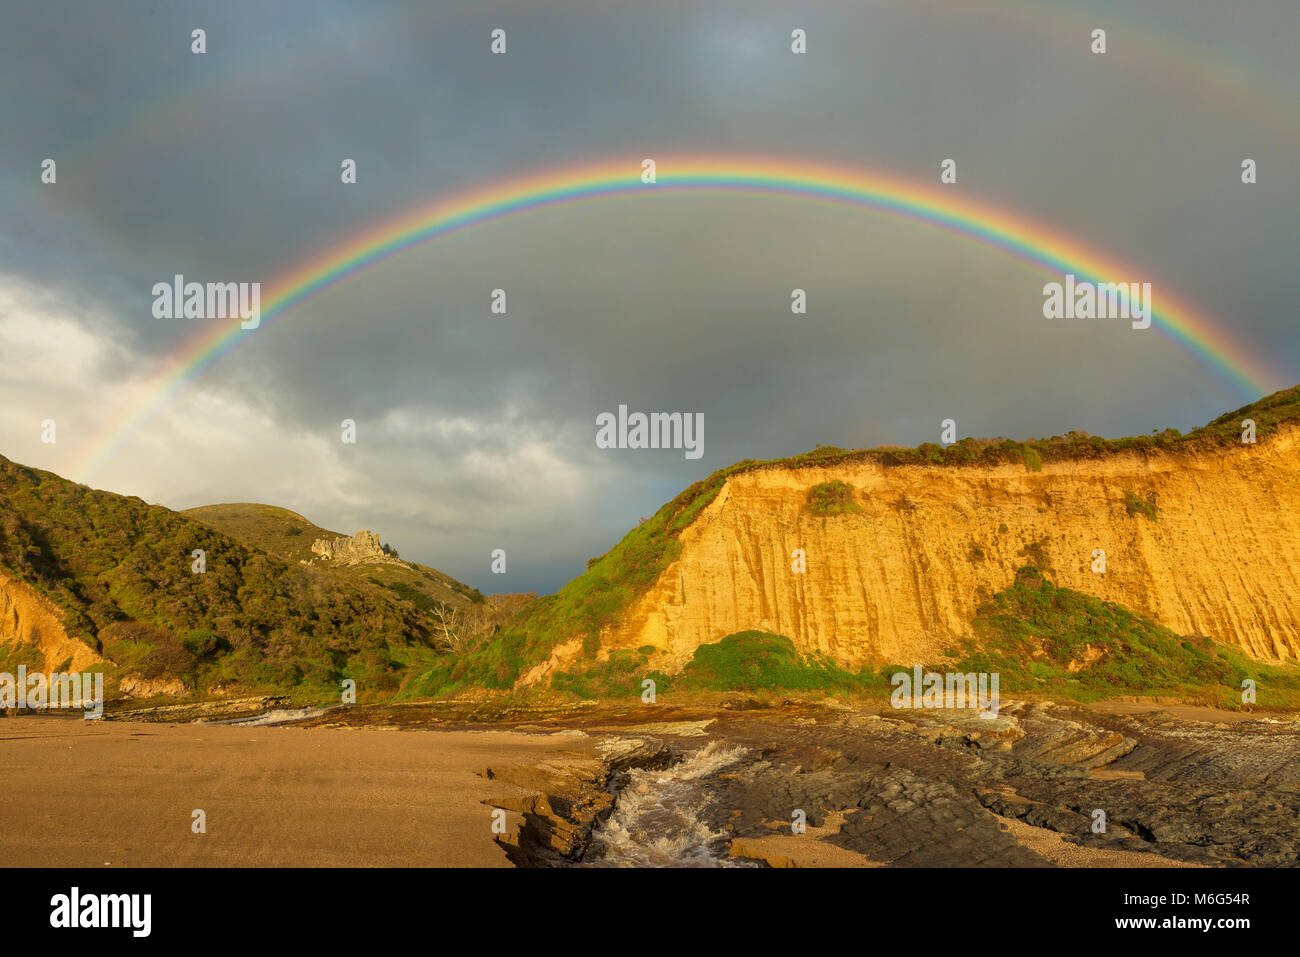 Rainbow, Sculptured Beach, Point Reyes National Seashore, Marin County, California - Stock Image